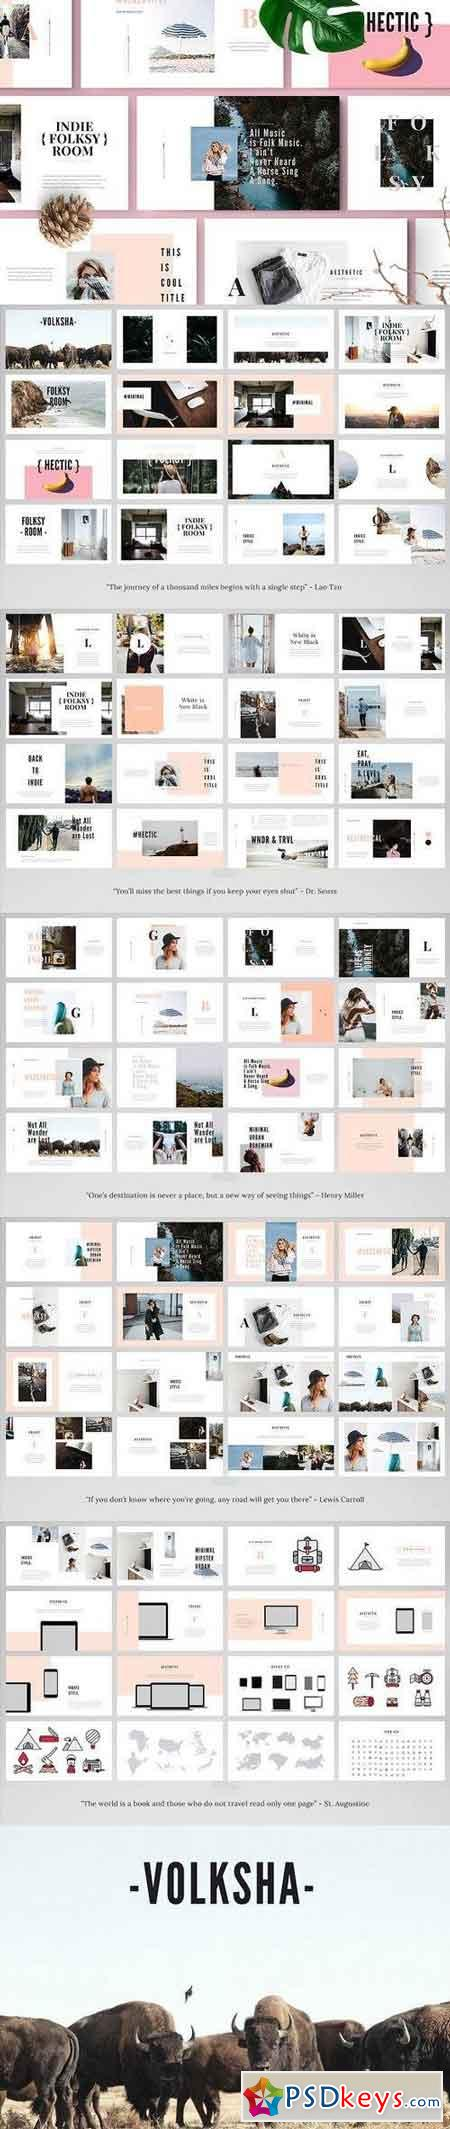 VOLKSHA - Powerpoint Template 1338507